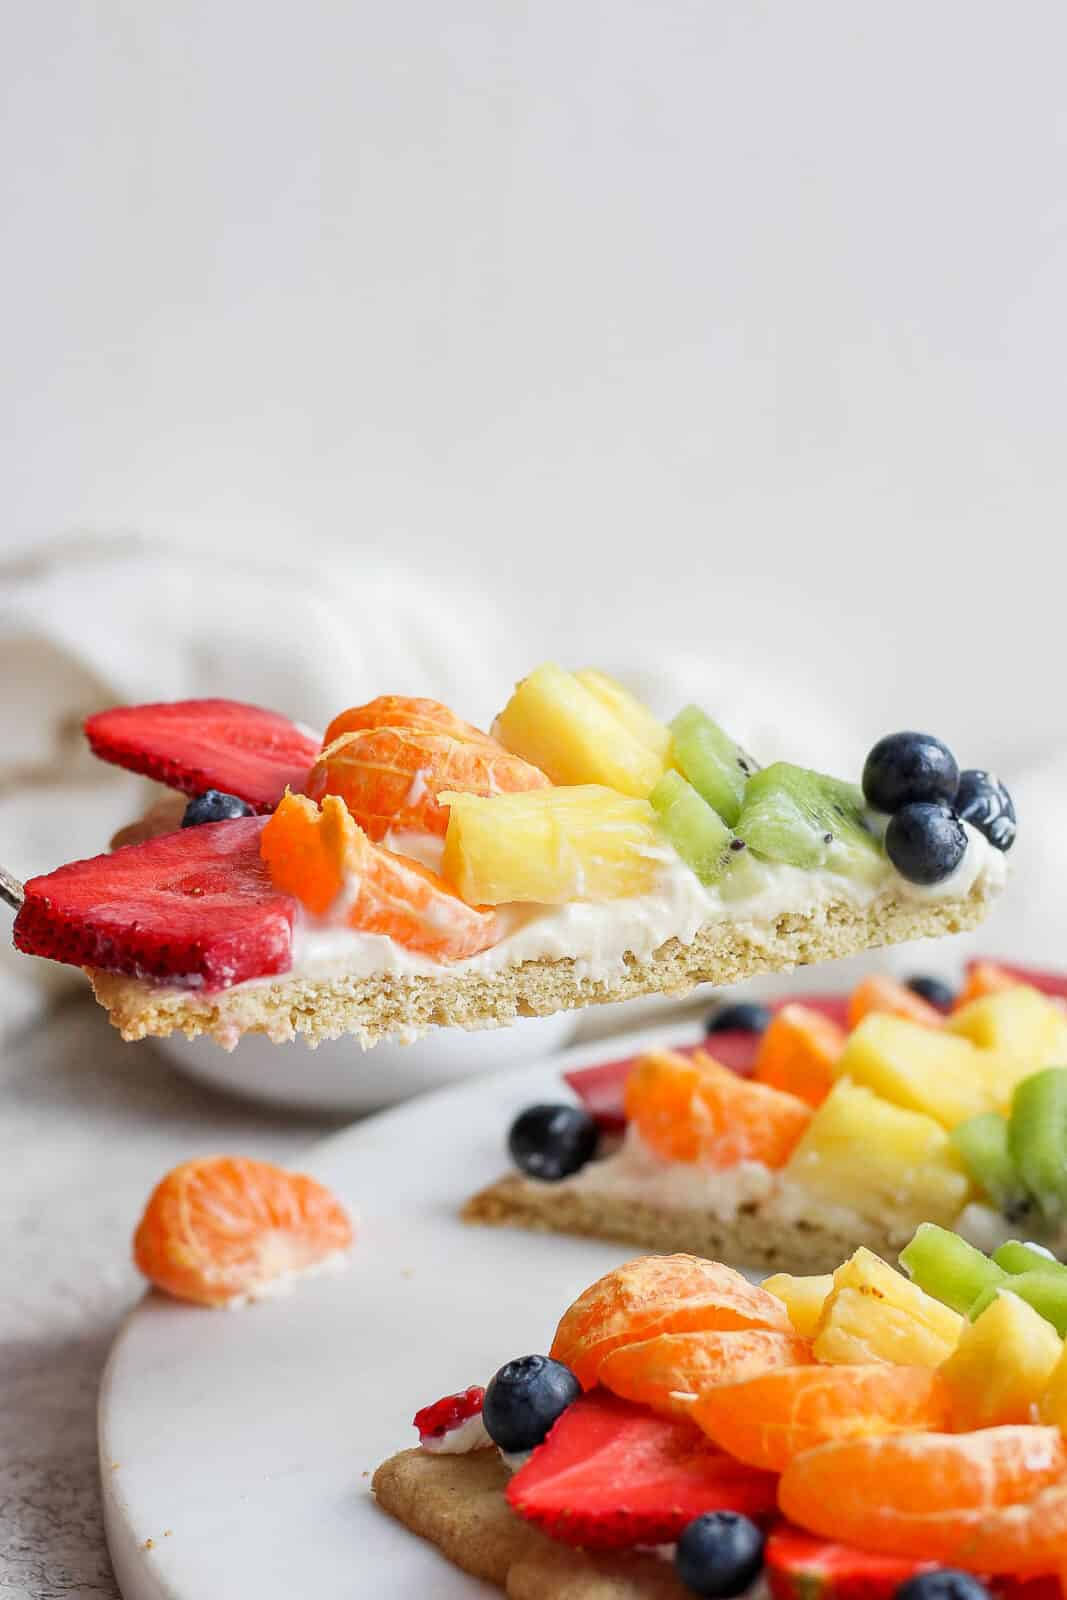 A slice of fruit pizza being lifted up.